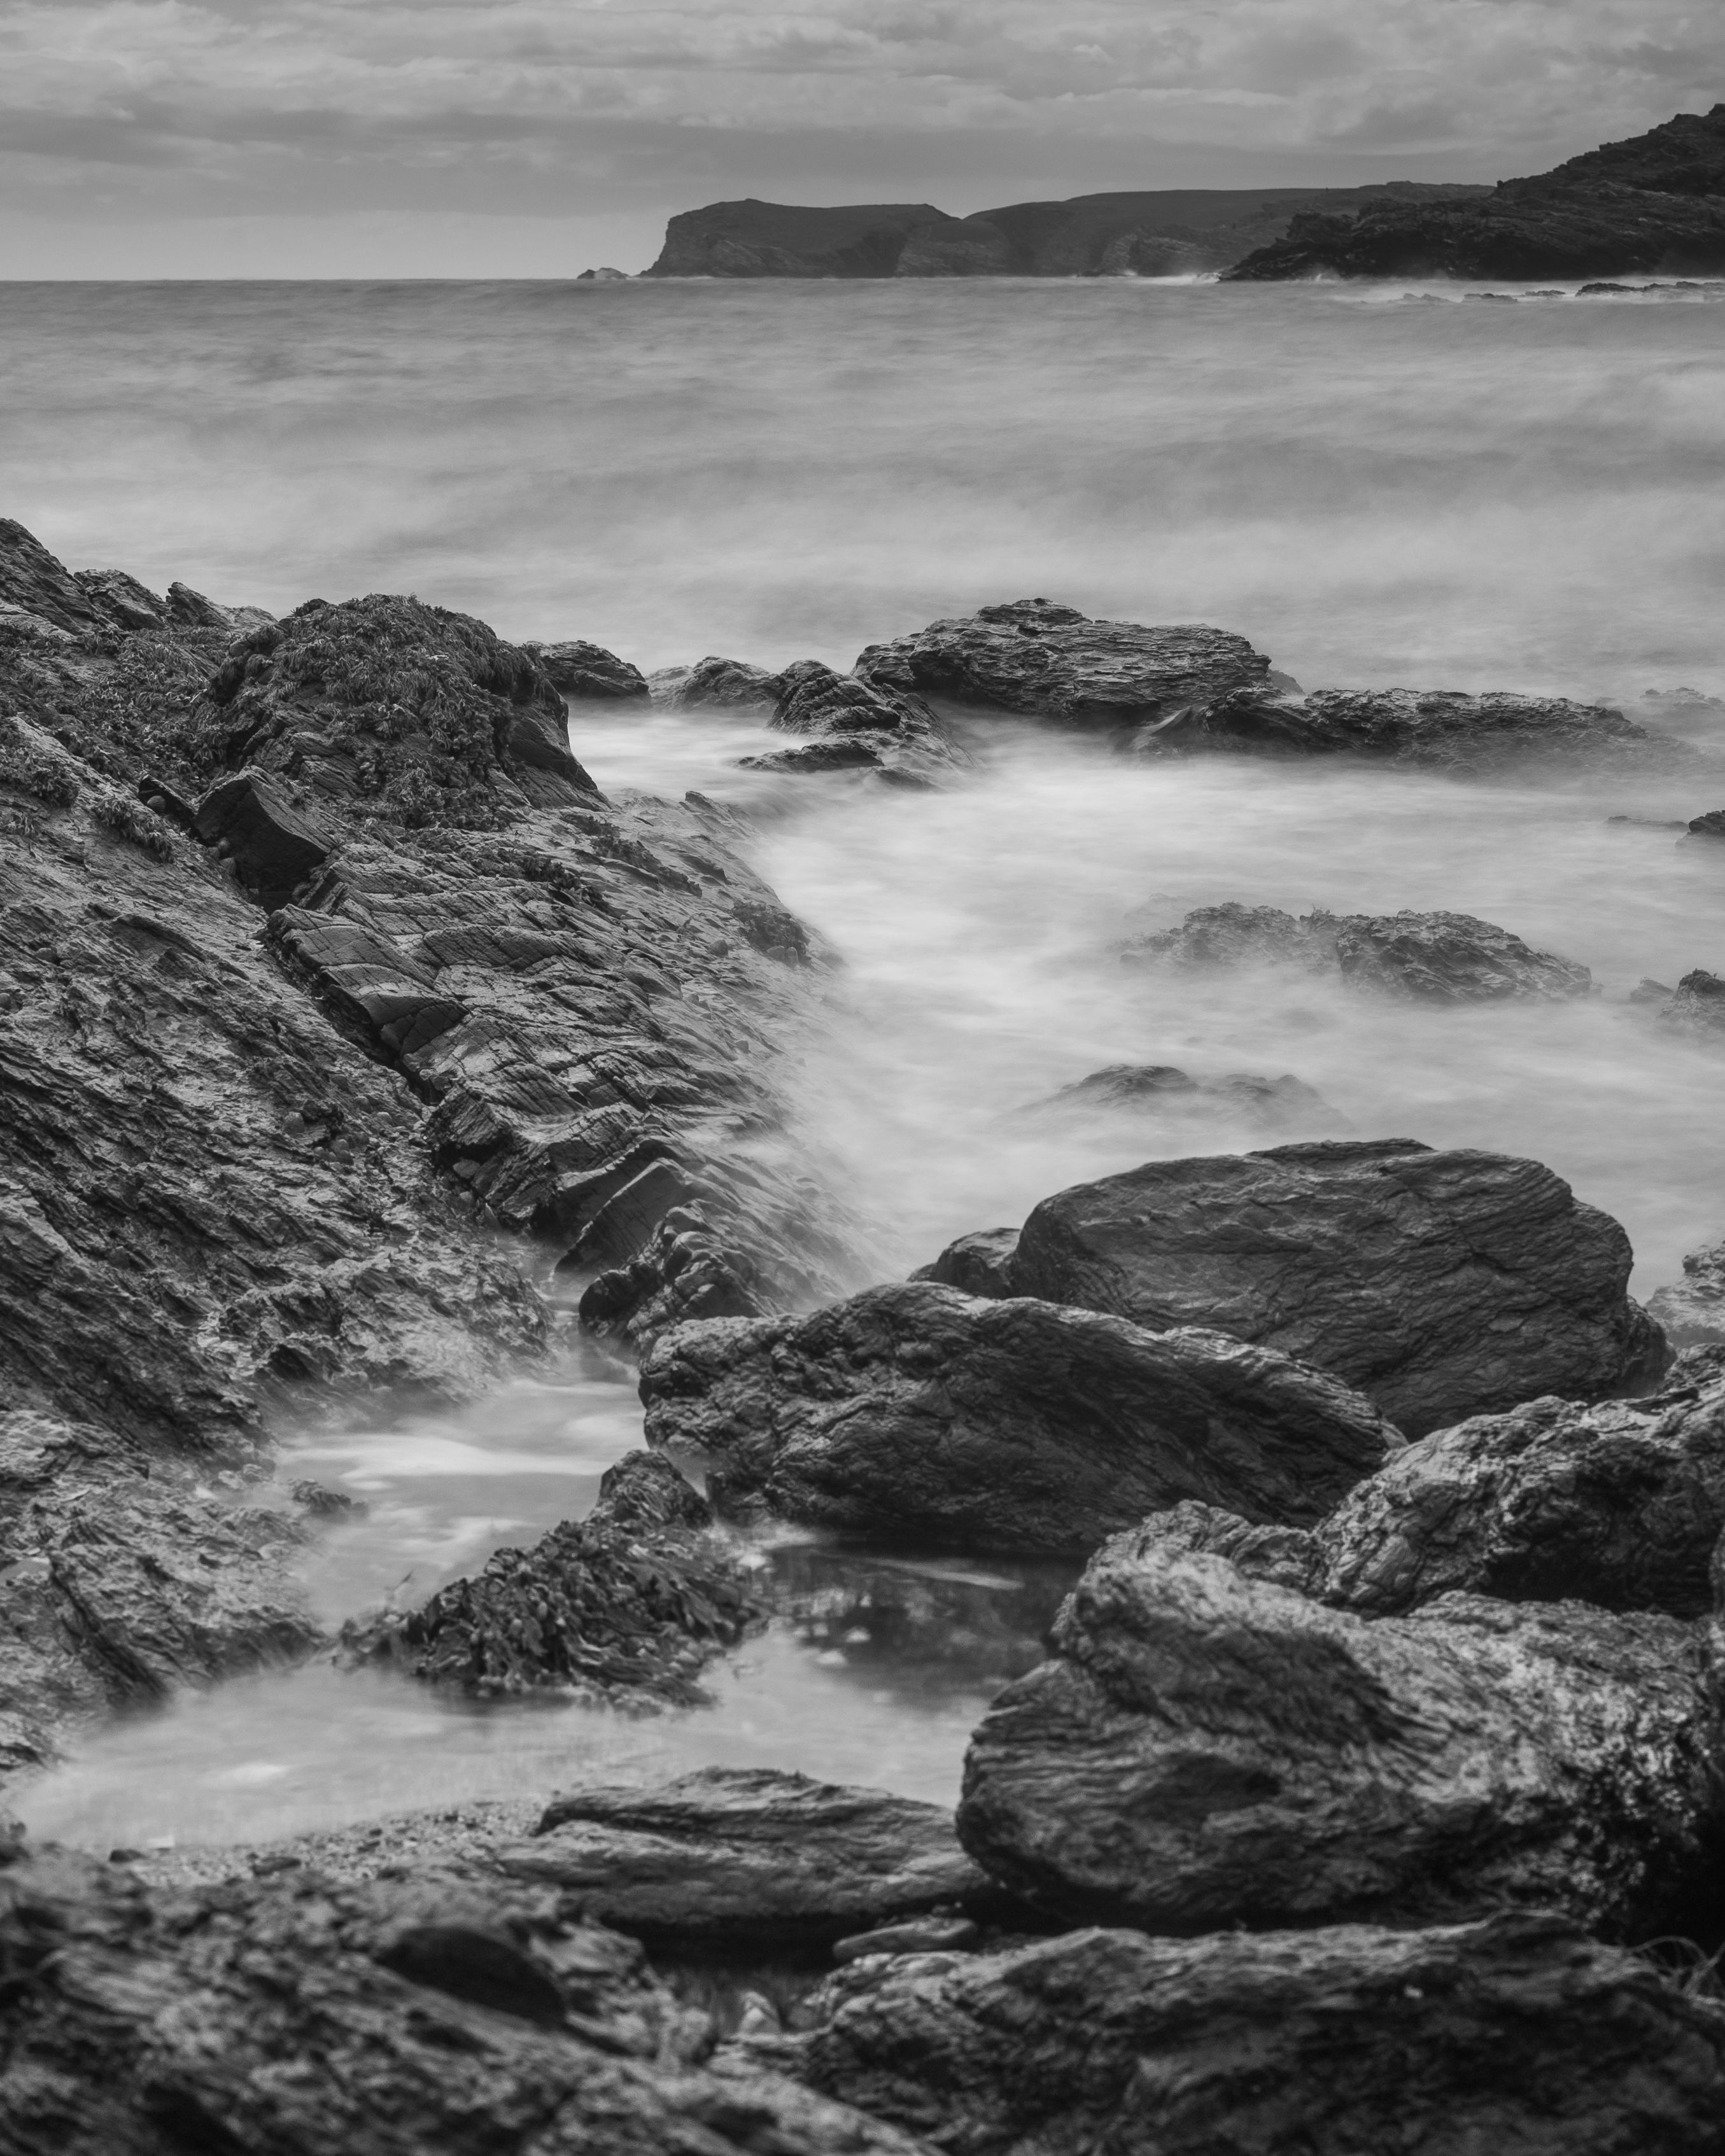 Water smooth over rocks in this black and white seascape photograph